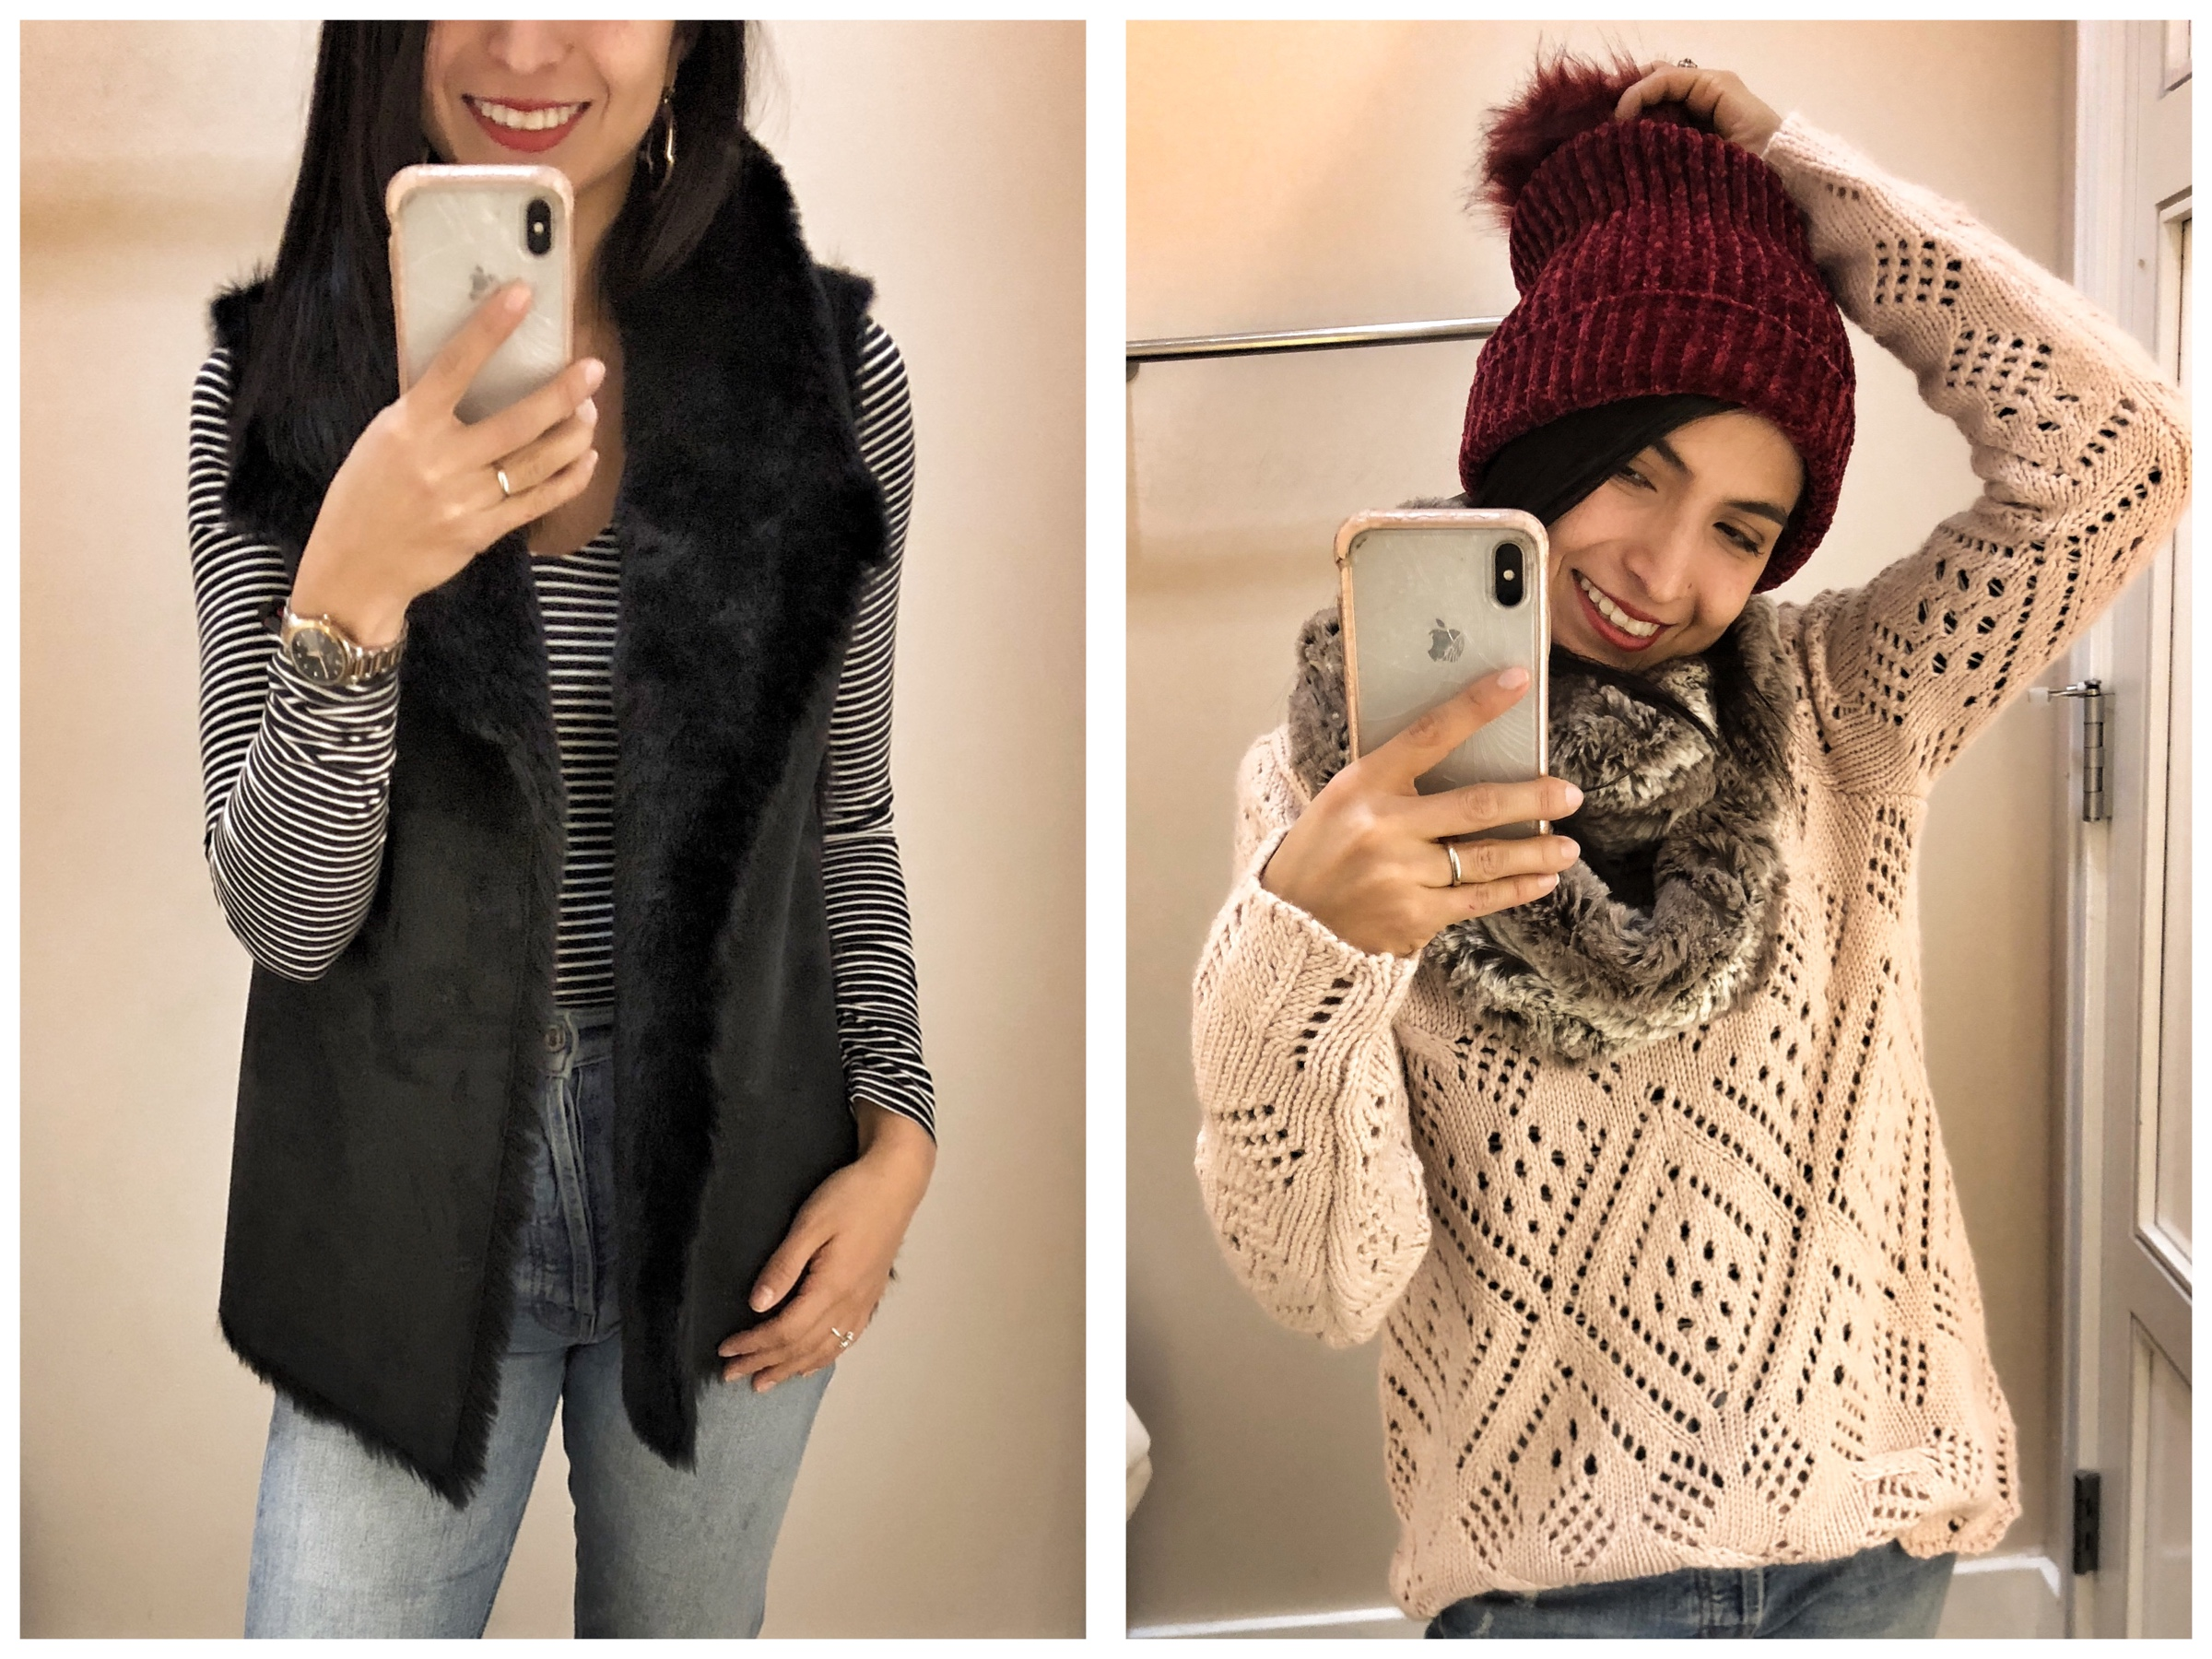 LOFT is 1 of our daily outfit go-tos, so we're giving it much love for Black Friday & holiday shopping. Check out our #dressingroomselfies (lots on sale!)